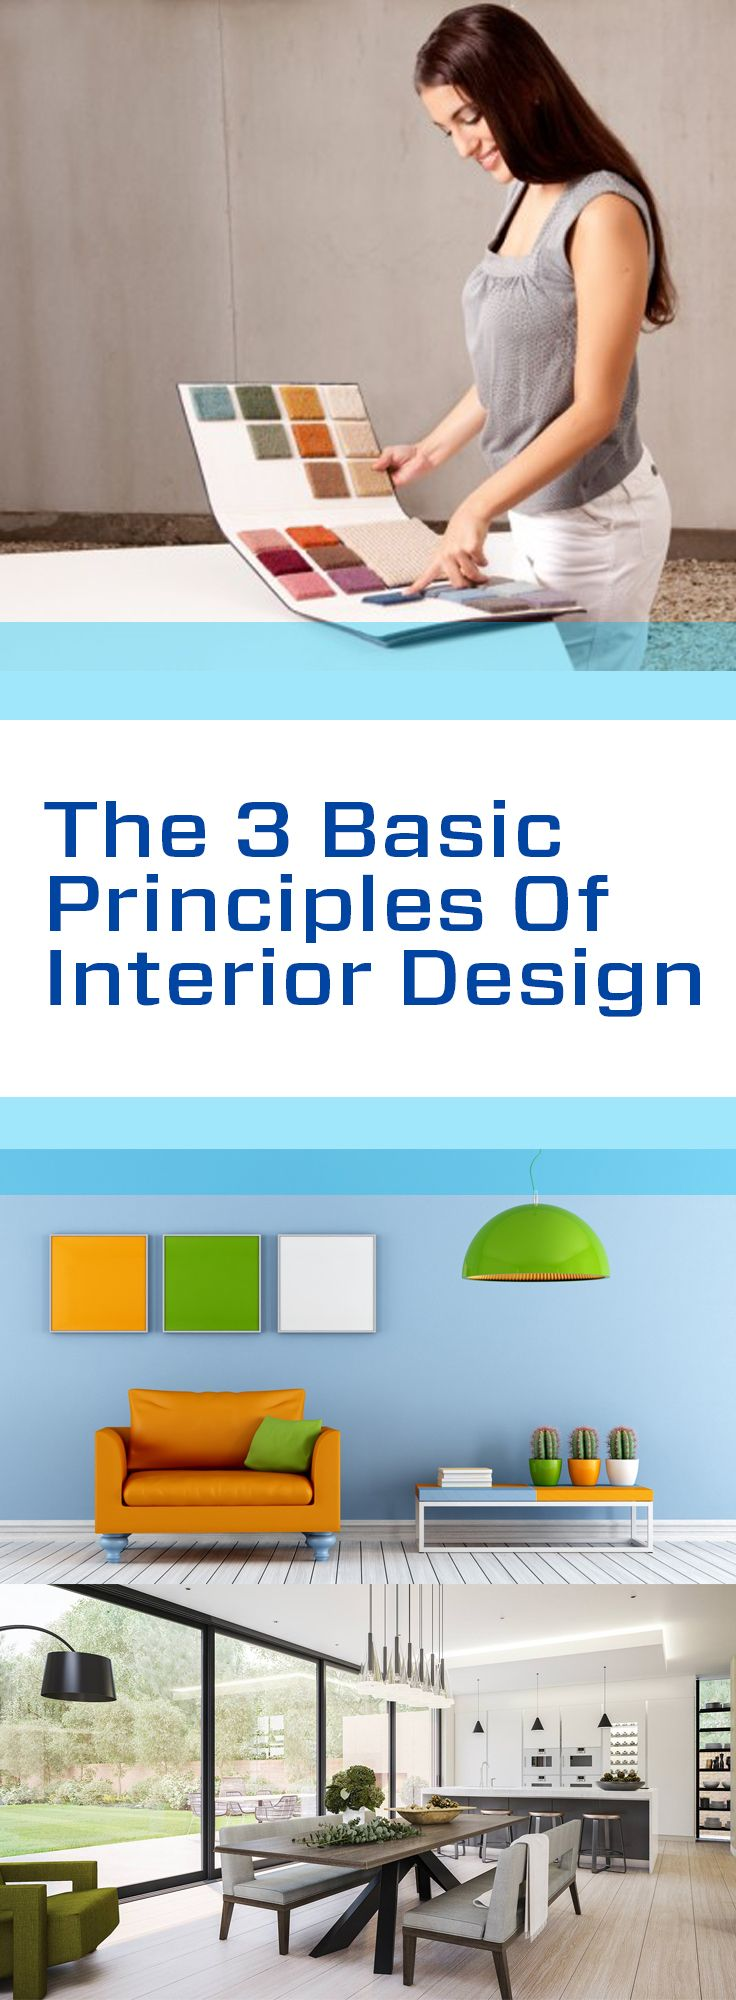 The 25 Best Principles Of Interior Design Ideas On